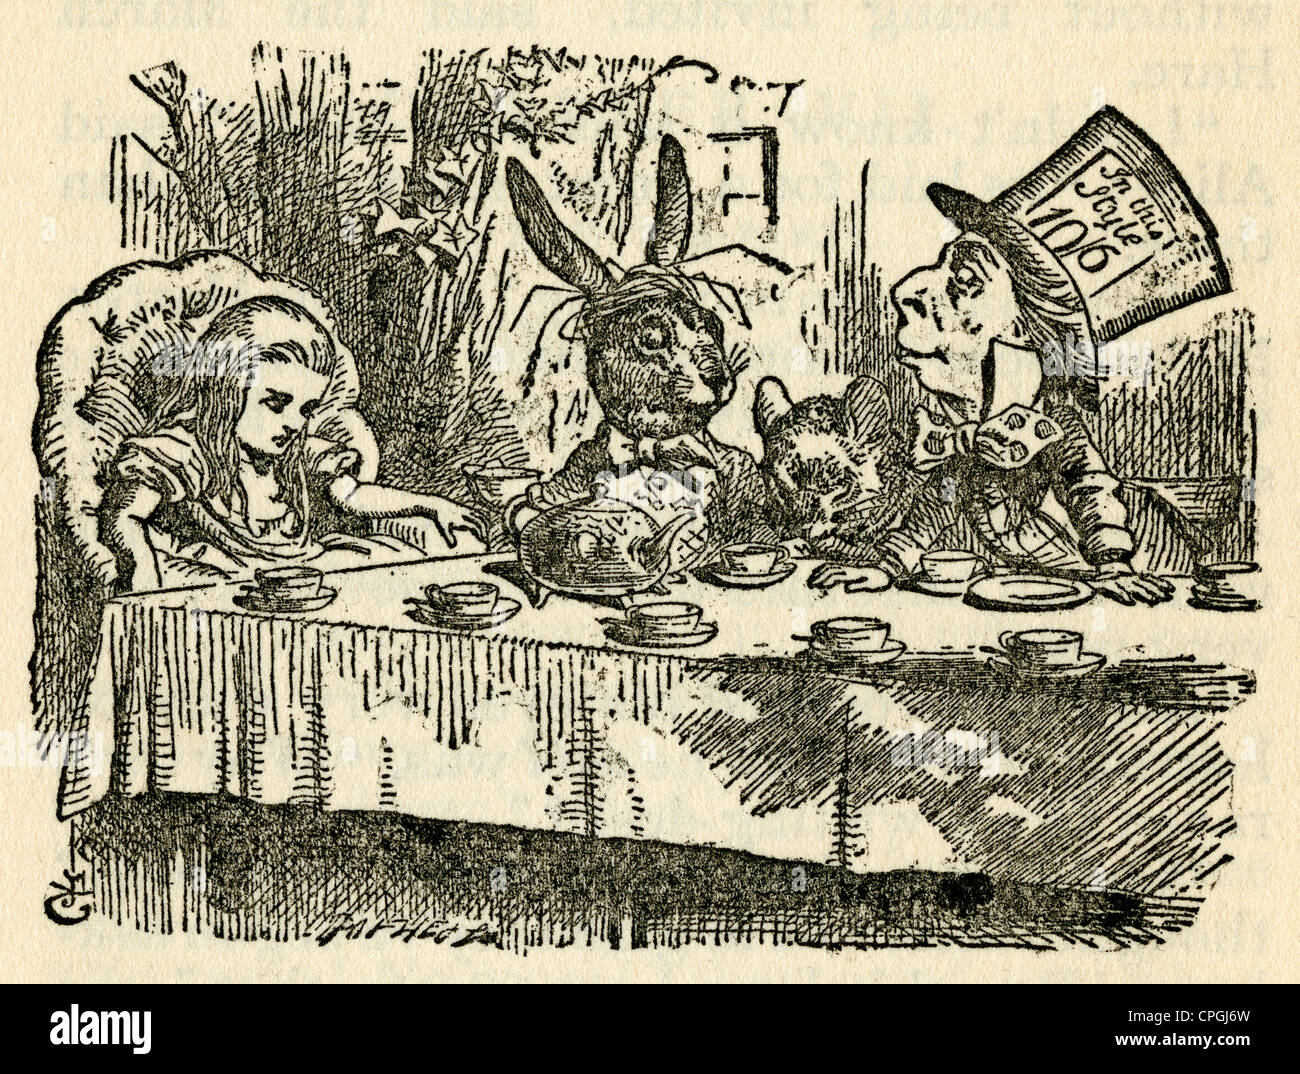 Circa 1910s edition of Alice in Wonderland. The Mad Hatter, March Hare, and the Dormouse at the Mad Tea-Party by - Stock Image